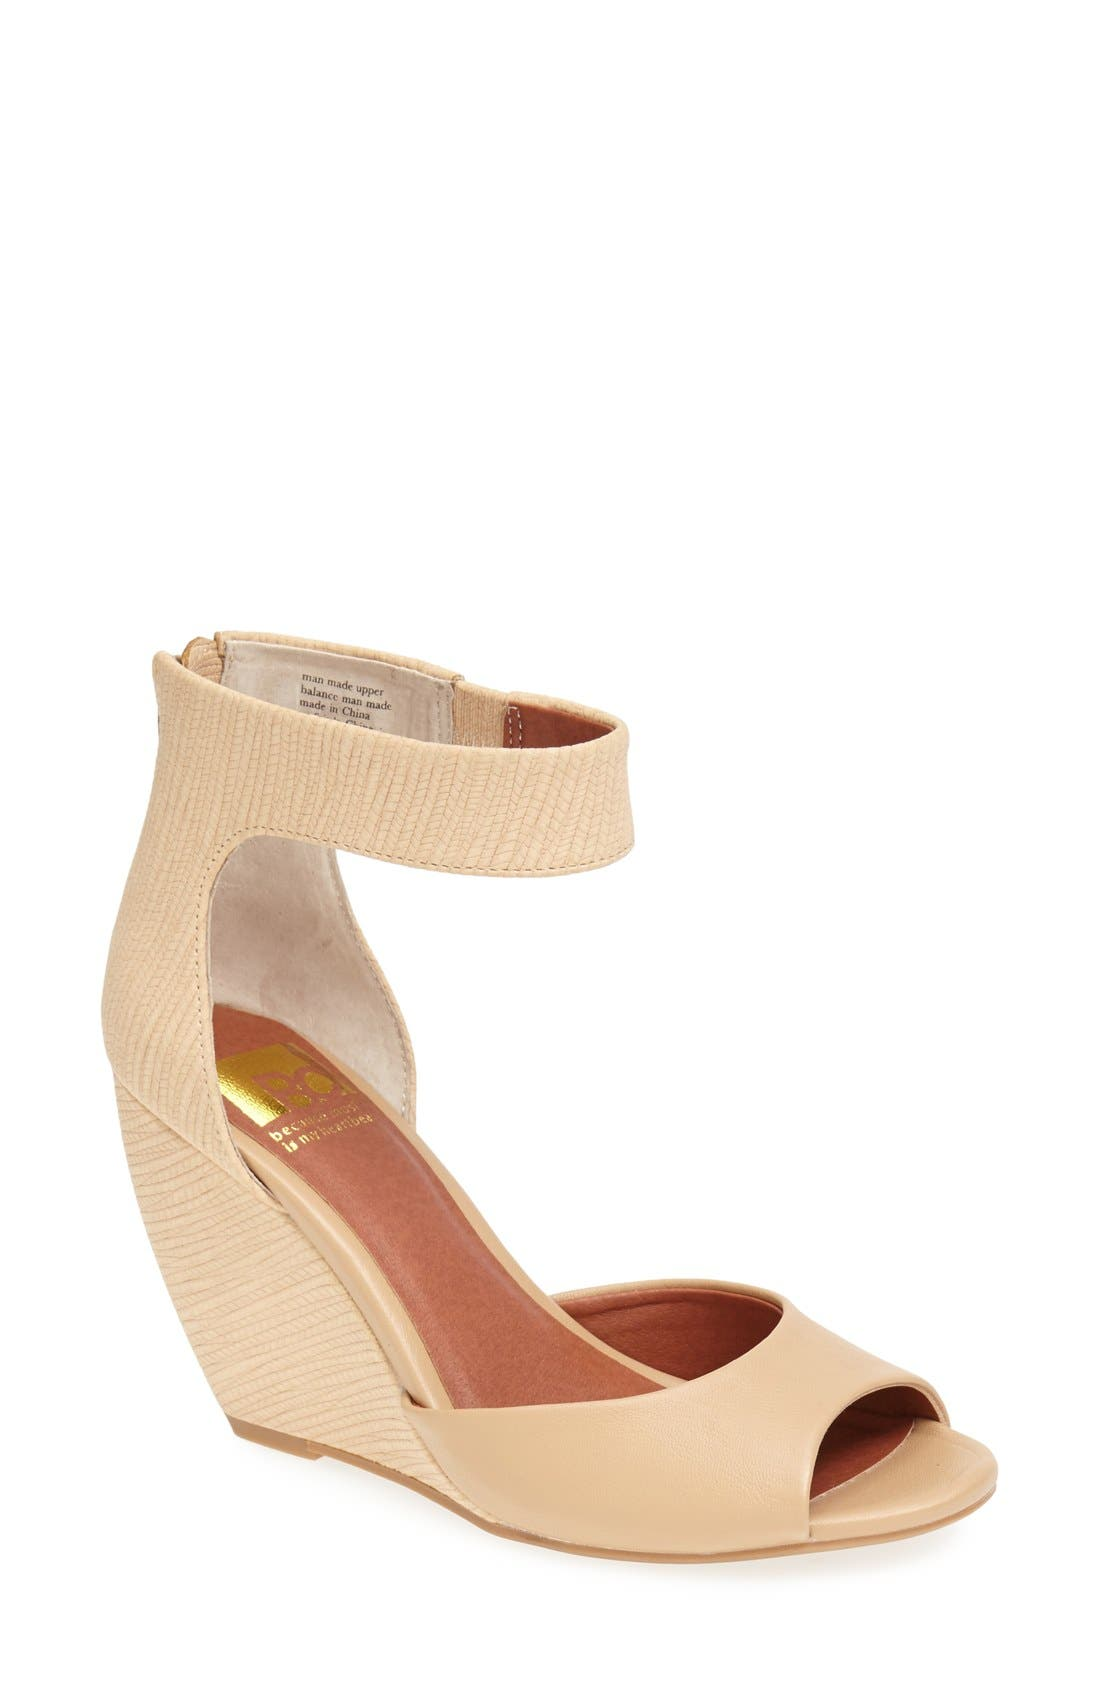 Alternate Image 1 Selected - BC Footwear 'Deep Down' Wedge Sandal (Women)